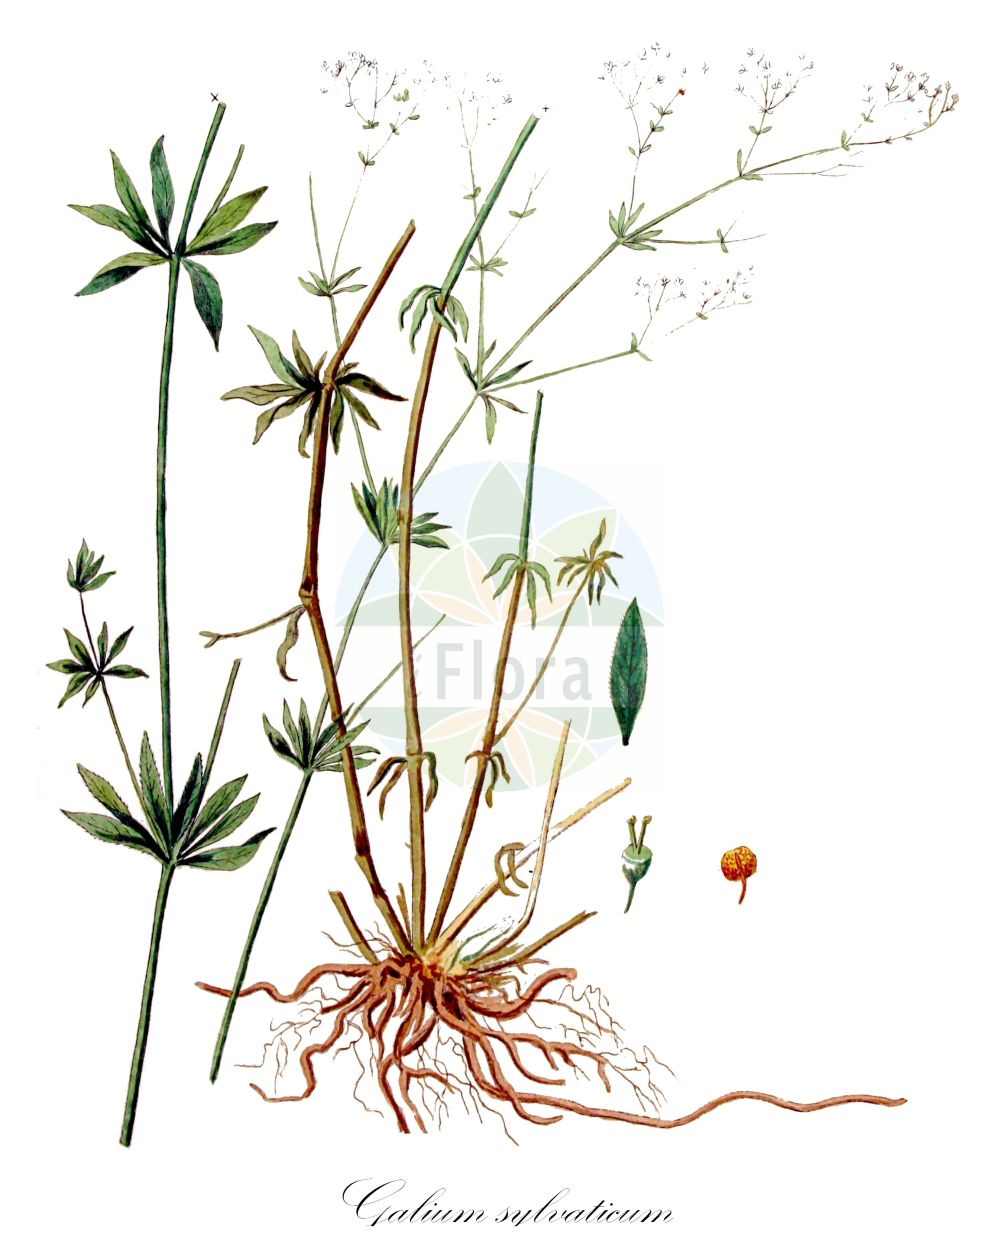 Historische Abbildung von Galium sylvaticum (Wald-Labkraut - Wood Bedstraw). Das Bild zeigt Blatt, Bluete, Frucht und Same. ---- Historical Drawing of Galium sylvaticum (Wald-Labkraut - Wood Bedstraw).The image is showing leaf, flower, fruit and seed.(Galium sylvaticum,Wald-Labkraut,Wood Bedstraw,Scotch Mist,Galium,Labkraut,Bedstraw,Rubiaceae,Roetegewaechse;Kaffeegewaechse;Krappgewaechse;Labkrautgewaechse,Bedstraw family,Blatt,Bluete,Frucht,Same,leaf,flower,fruit,seed,Kops (1800-1934))